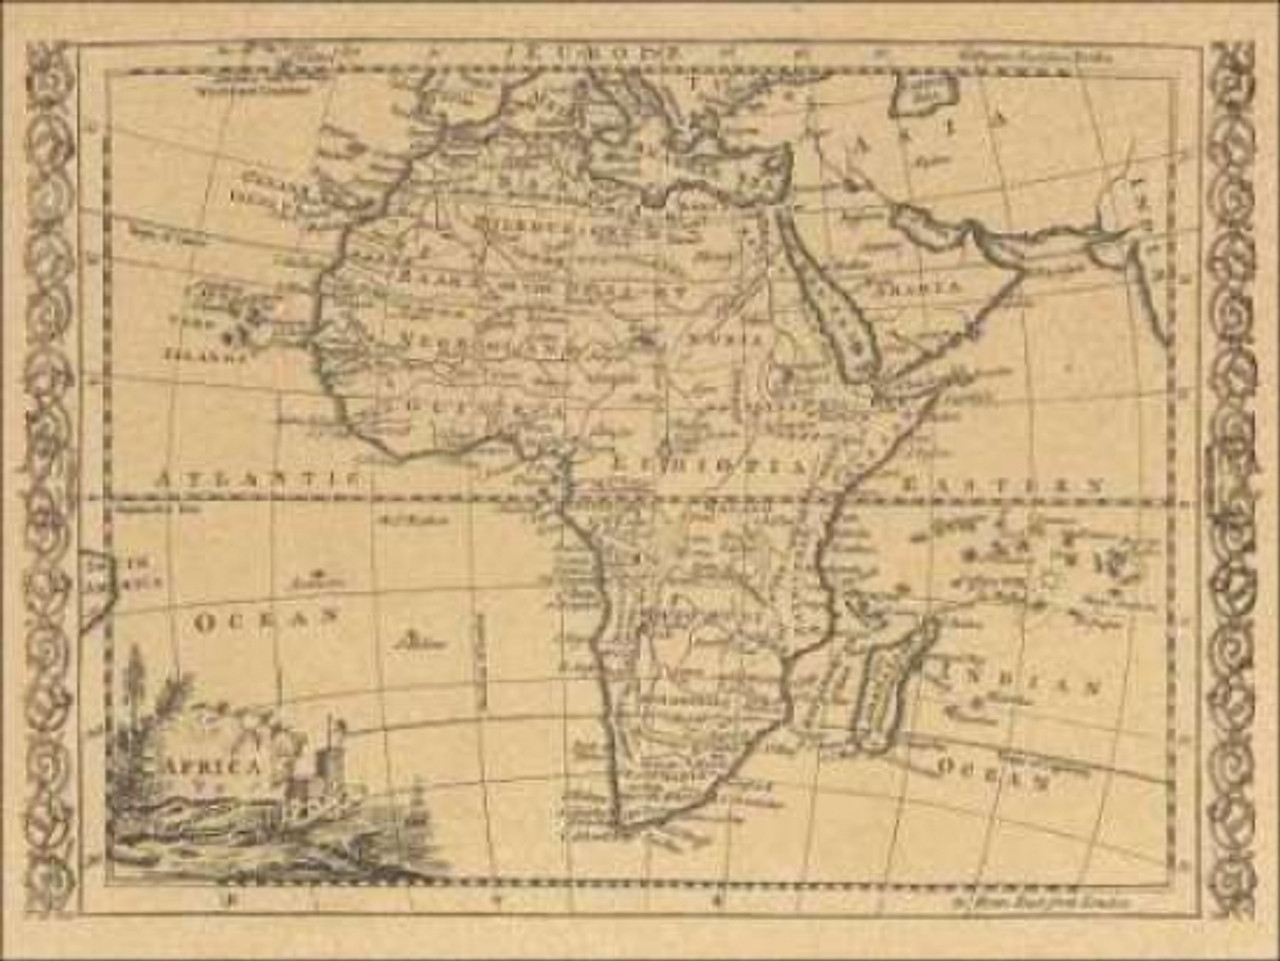 Map Of Africa 1800.Africa 1800 Poster Print By World Map Item Varpdxcc2721